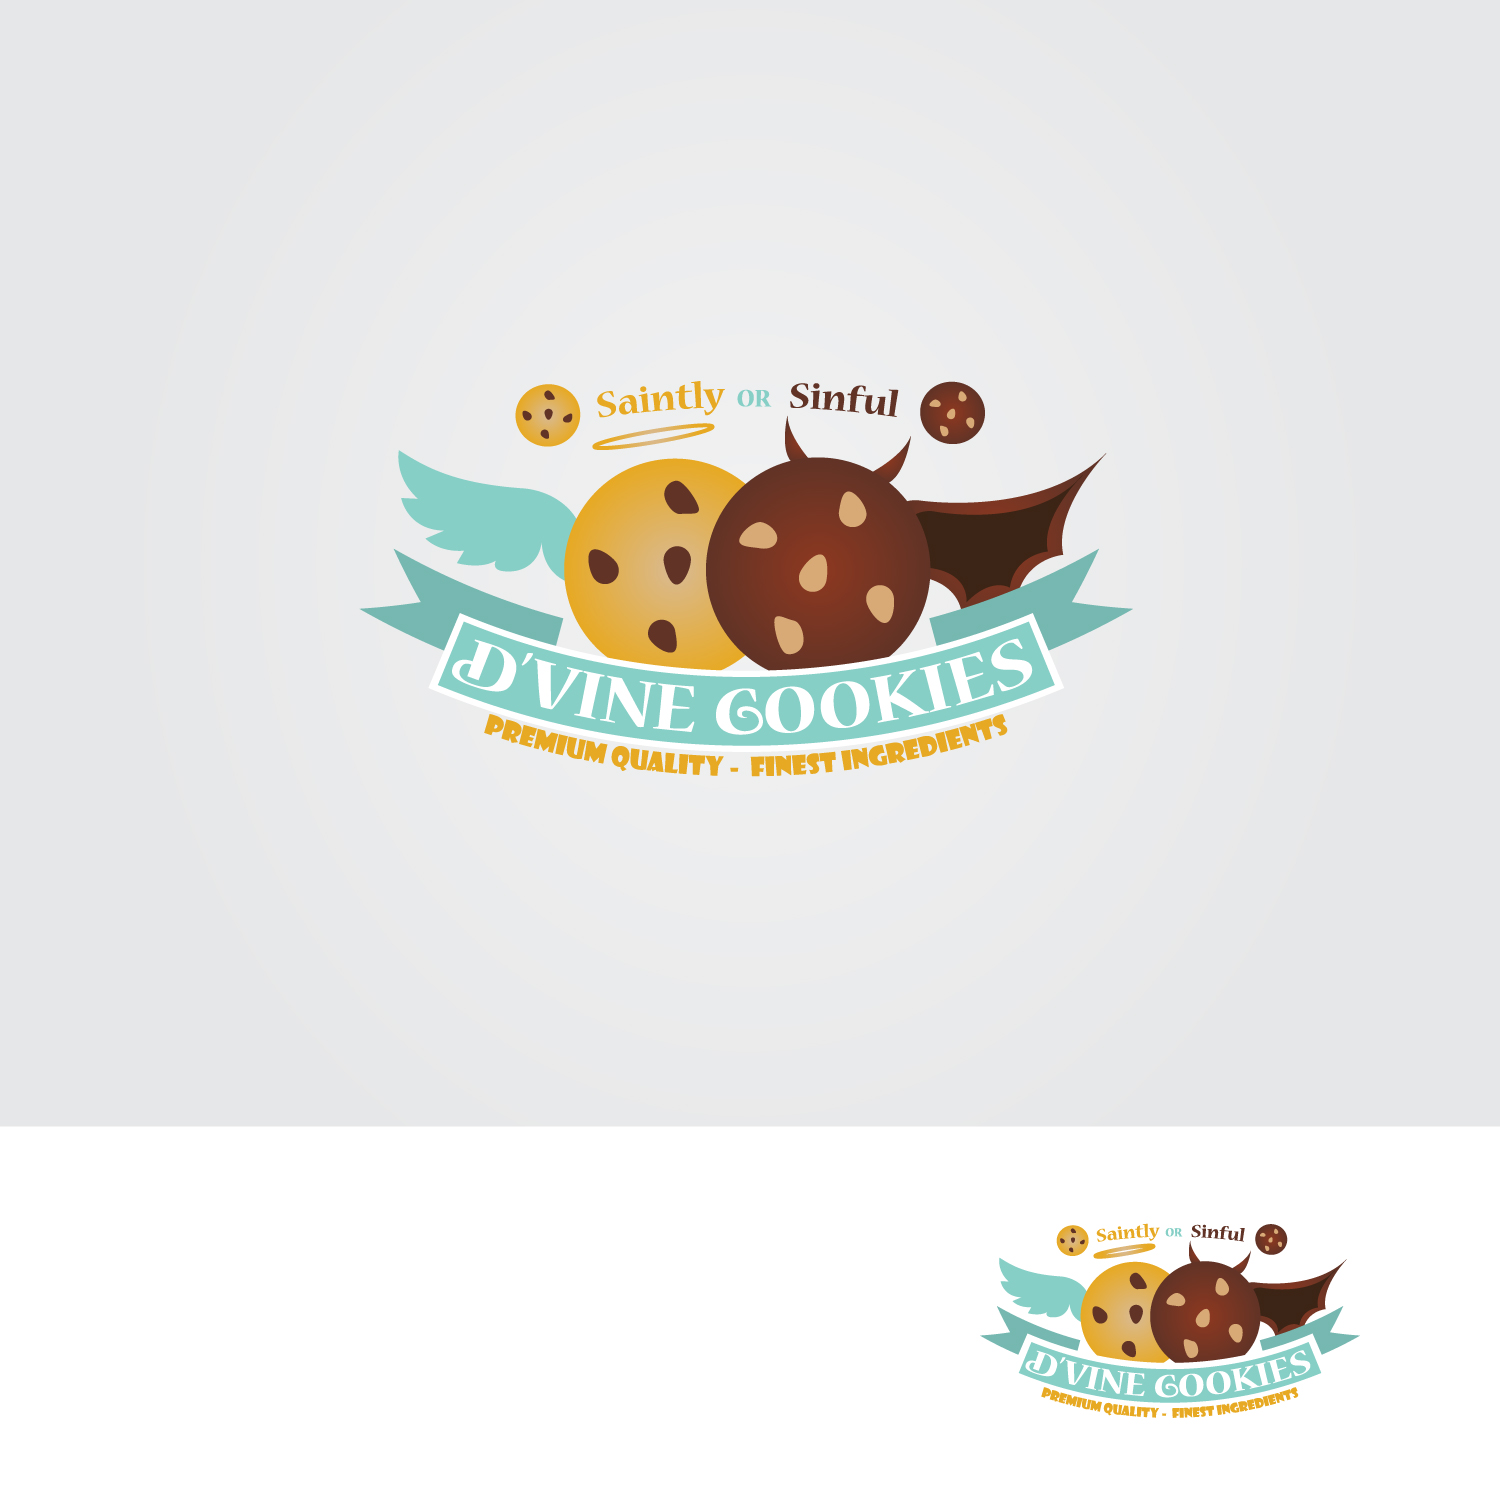 Logo design by solar designs for dvine cookies design 16351372